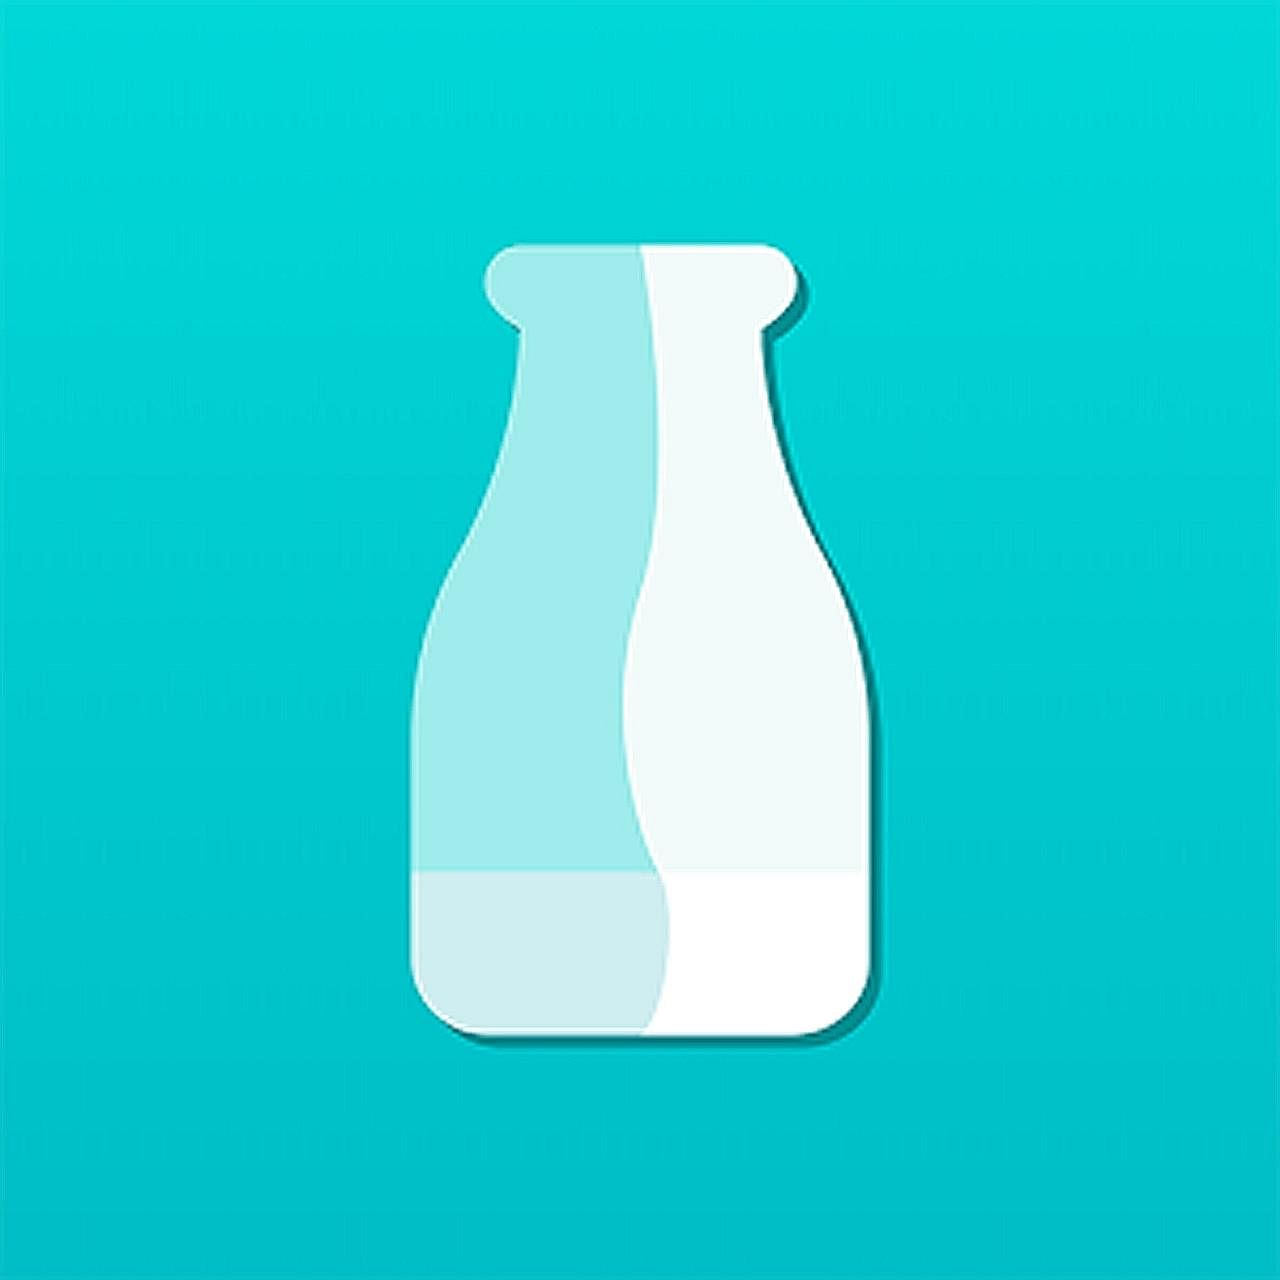 With the Out Of Milk app, users are not only able to create a grocery shopping list, but also a pantry list to track the items at home and their expiry dates.